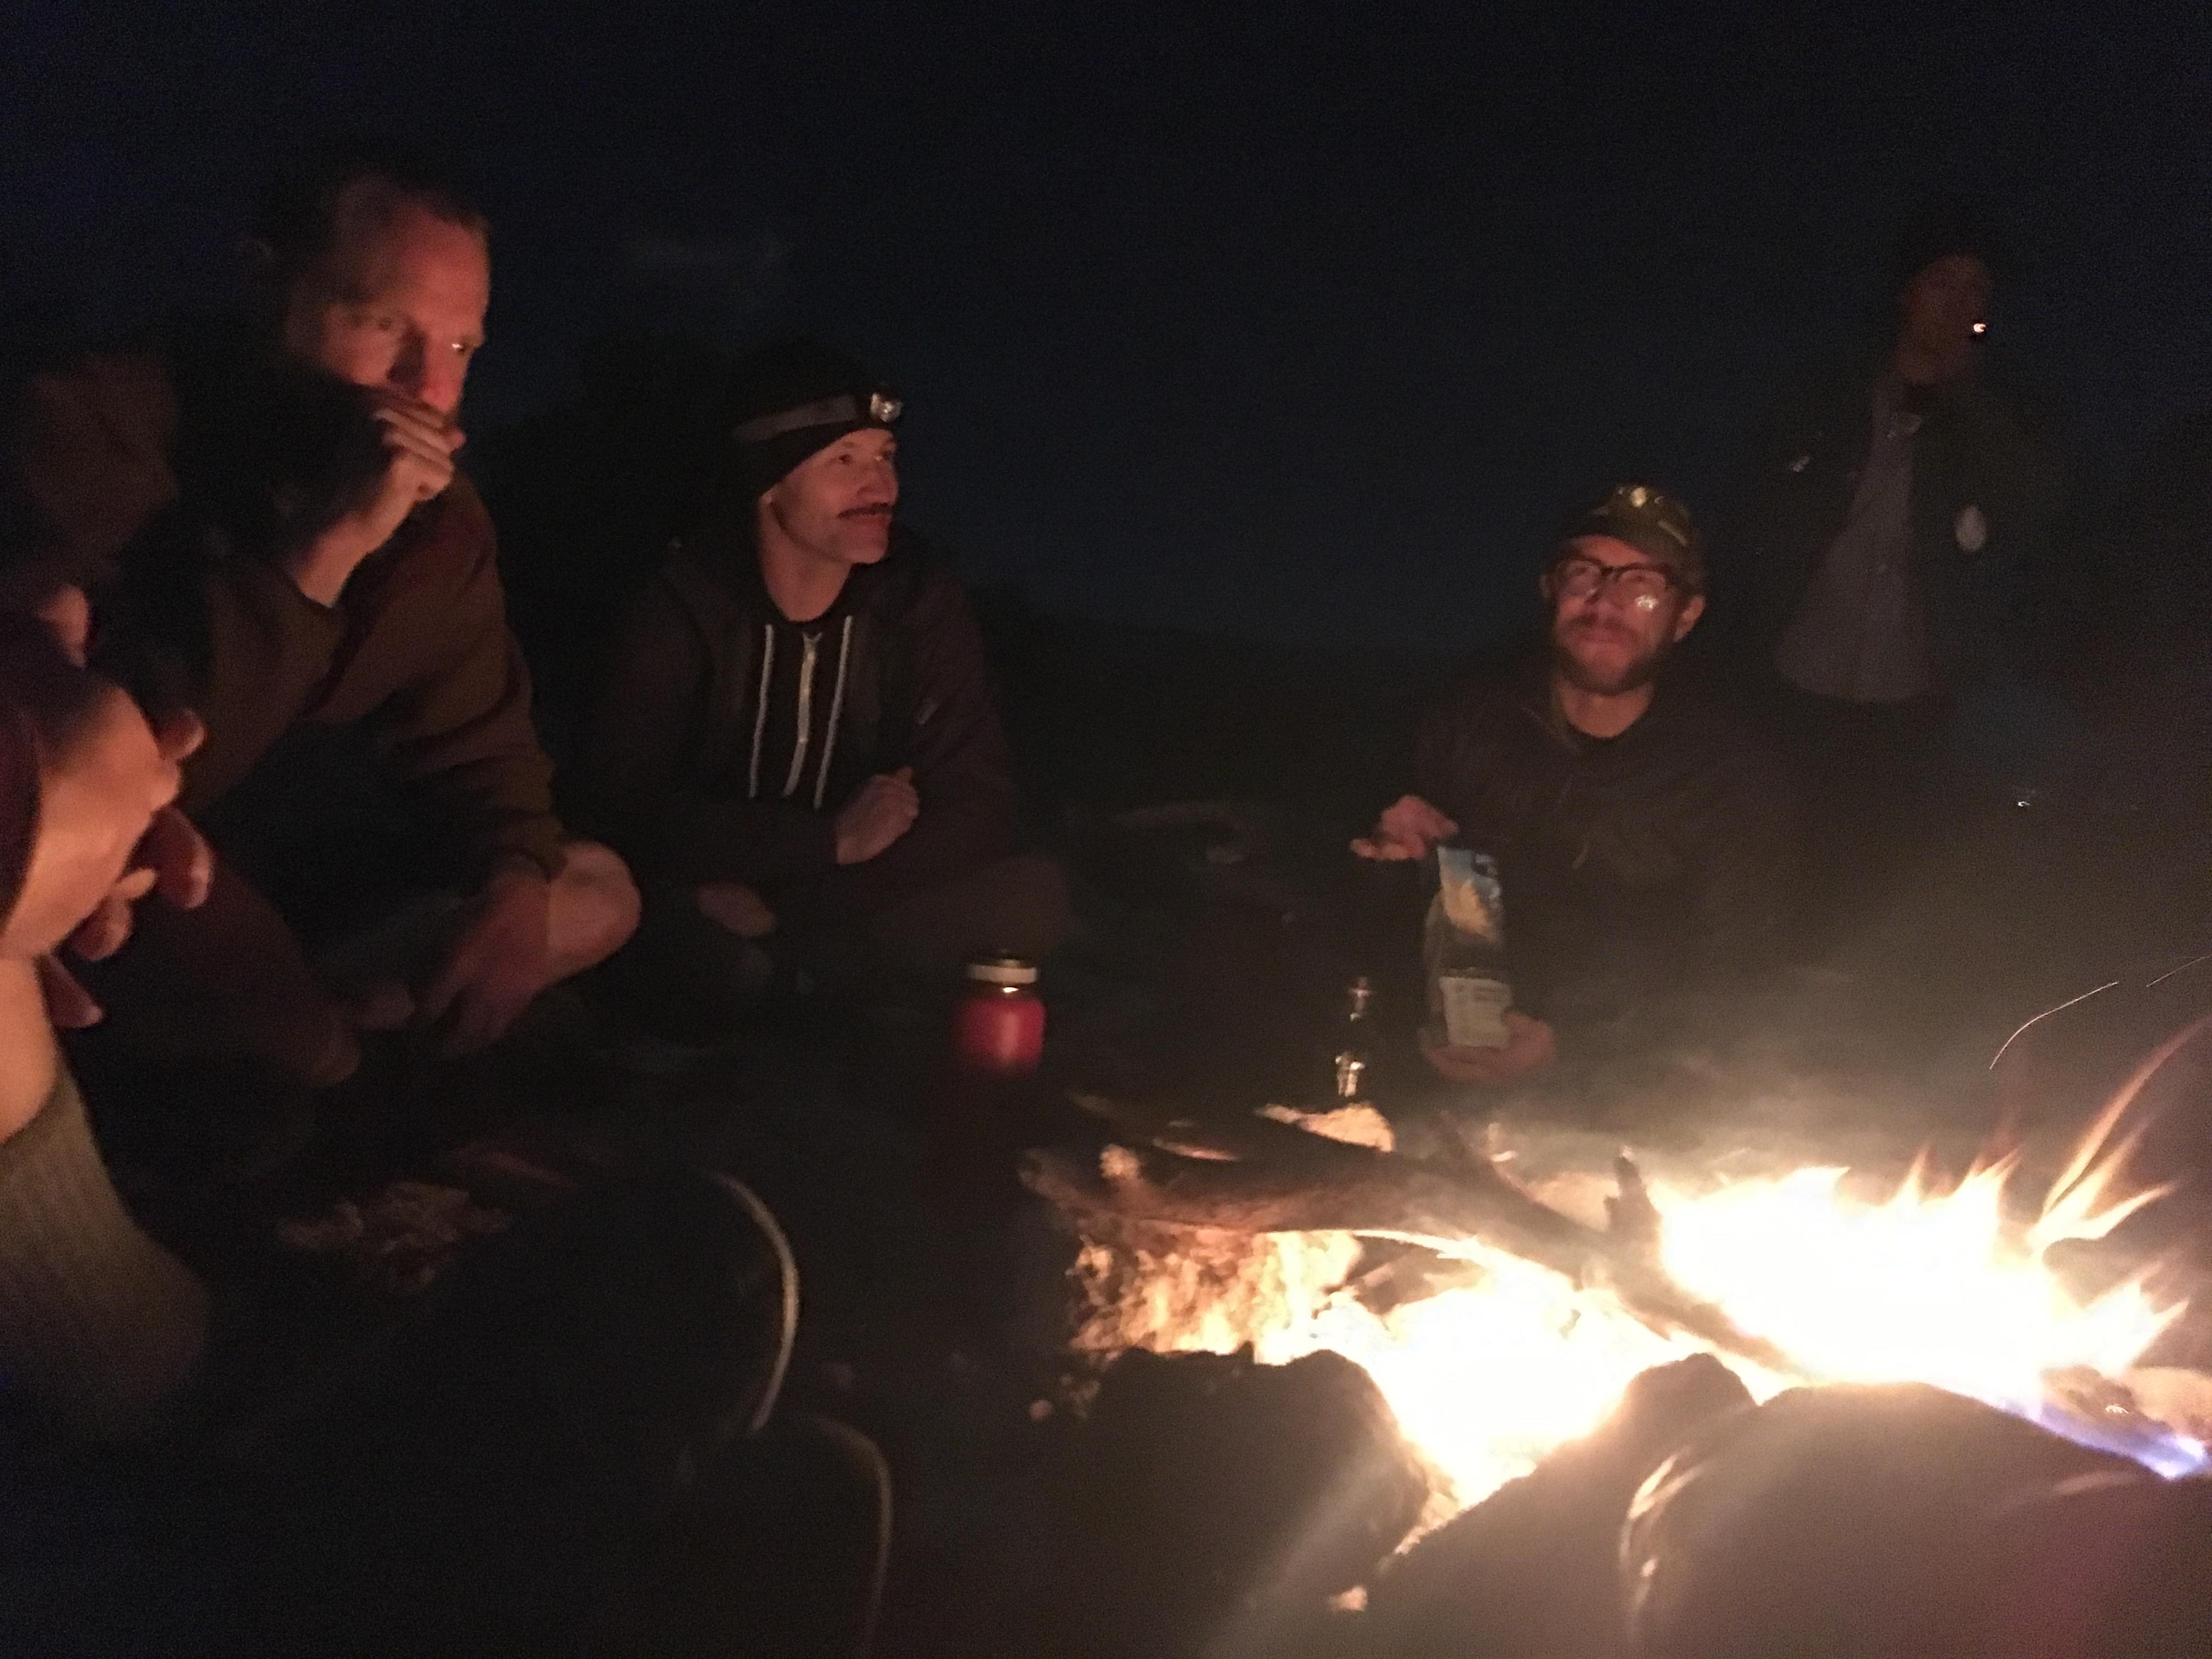 An upside down view of a campfire with three people sitting around a campfire at night